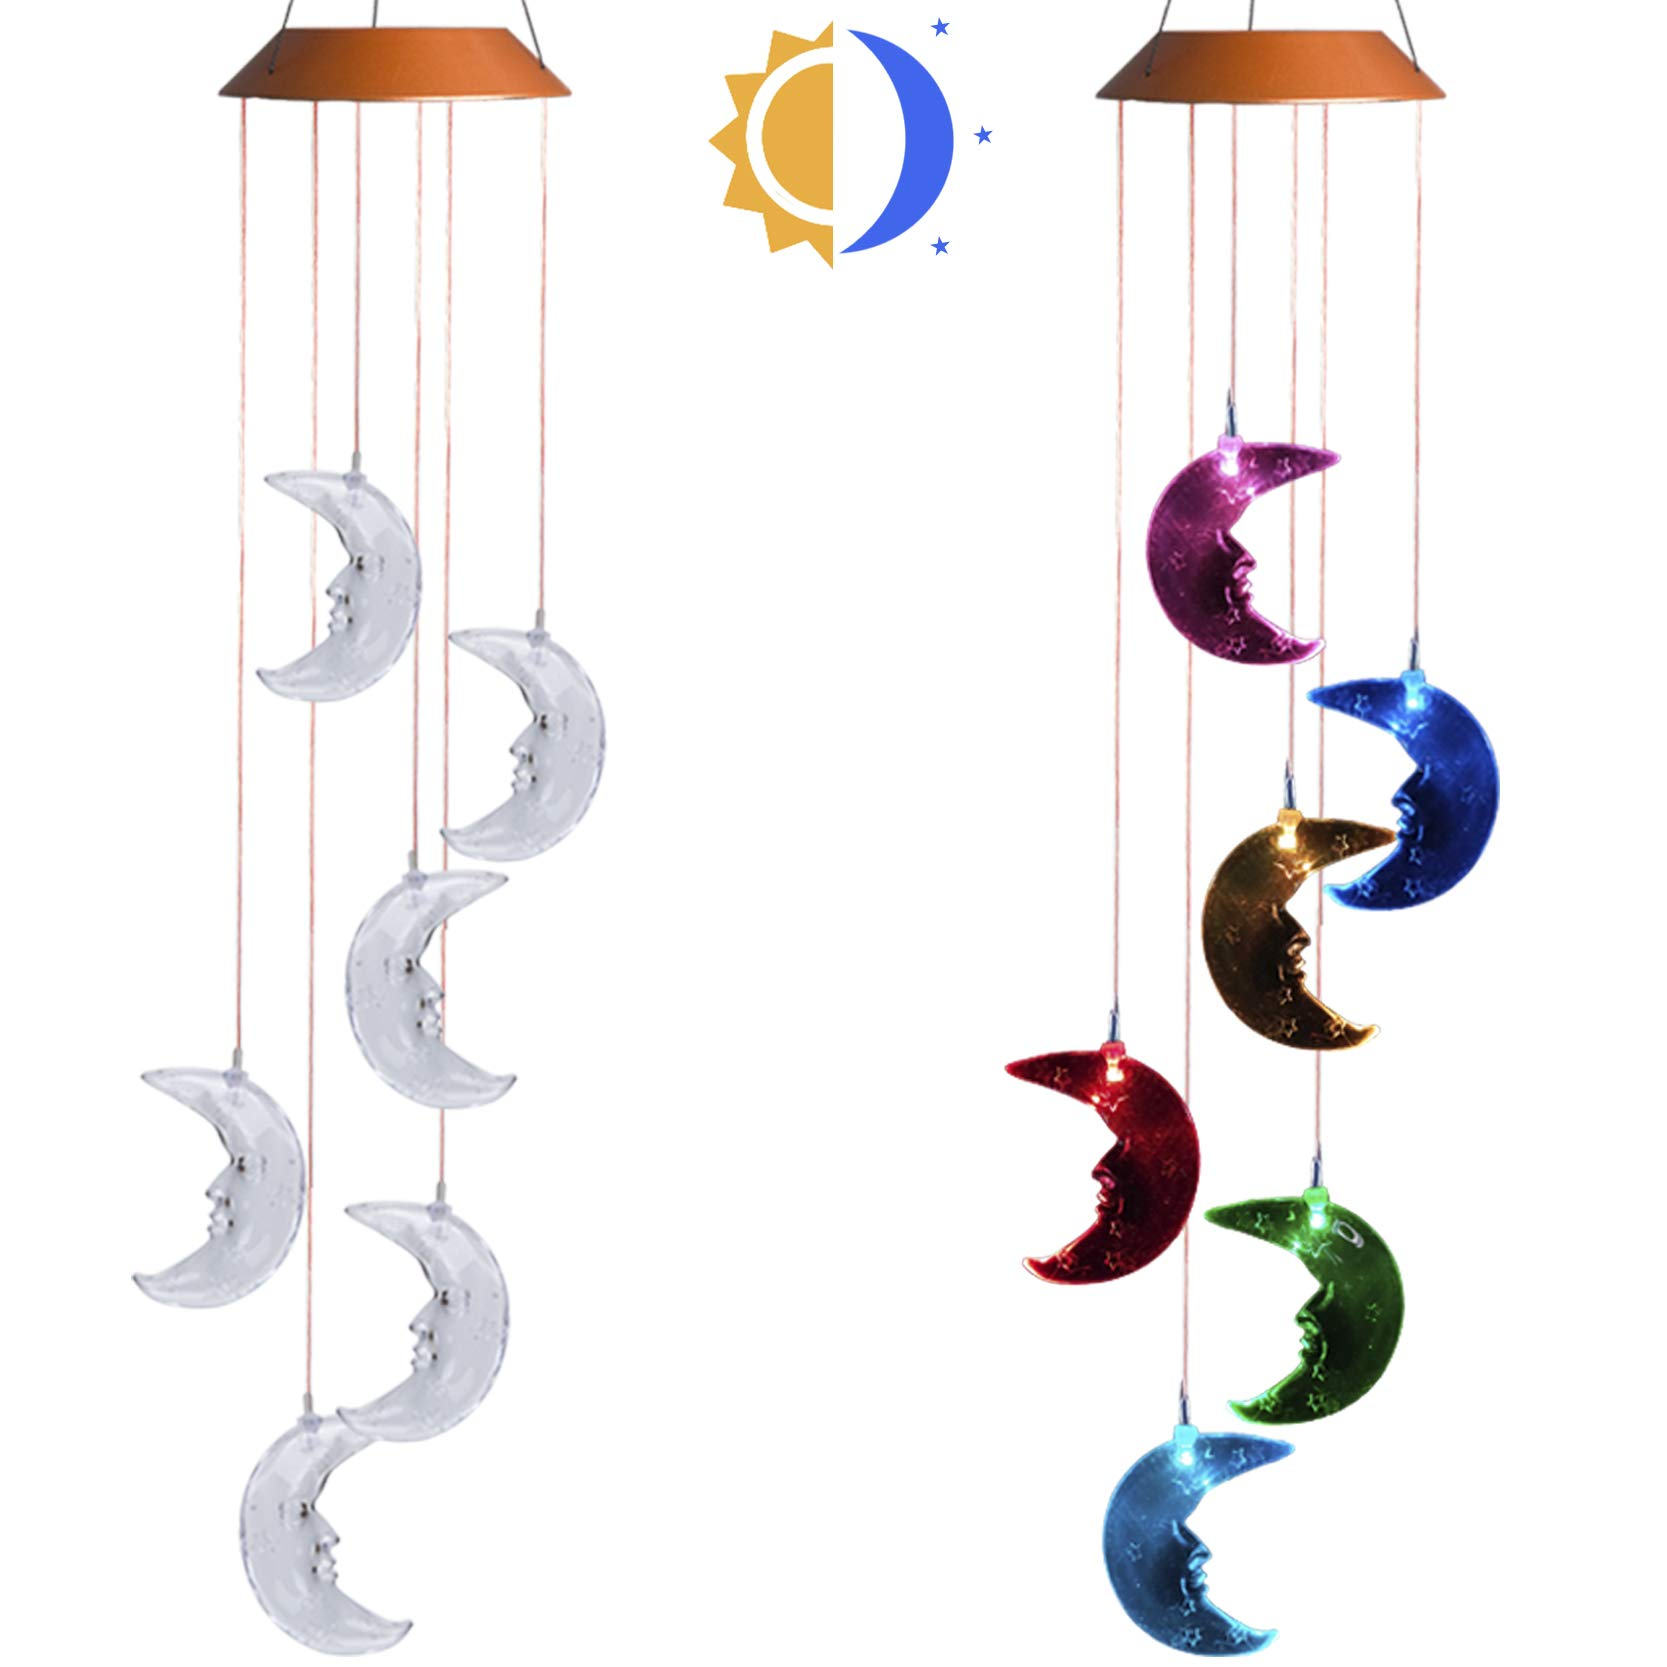 Asbana Solar Powered Wind Spinner Light, 6 Moons with 7 Colors Changing Wind Light, Waterproof Hanging Wind Chime Lamp Mobile Suspended Light for Home Outdoor Garden Lighting Decor by Asbana